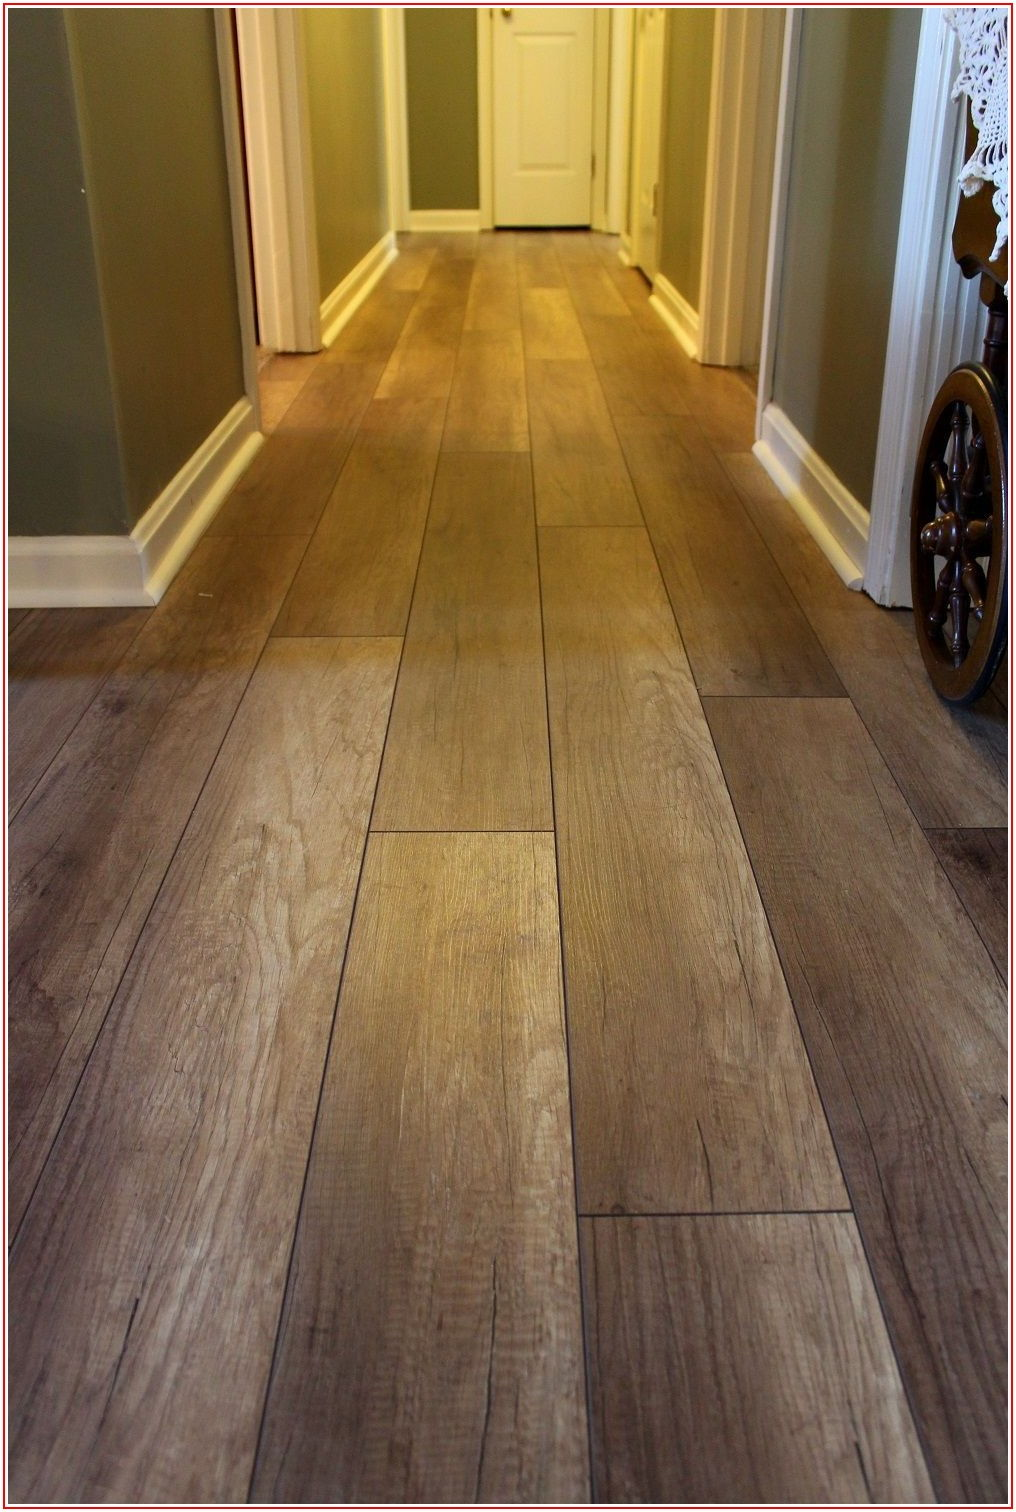 Vinyl Plank Flooring Throughout Home